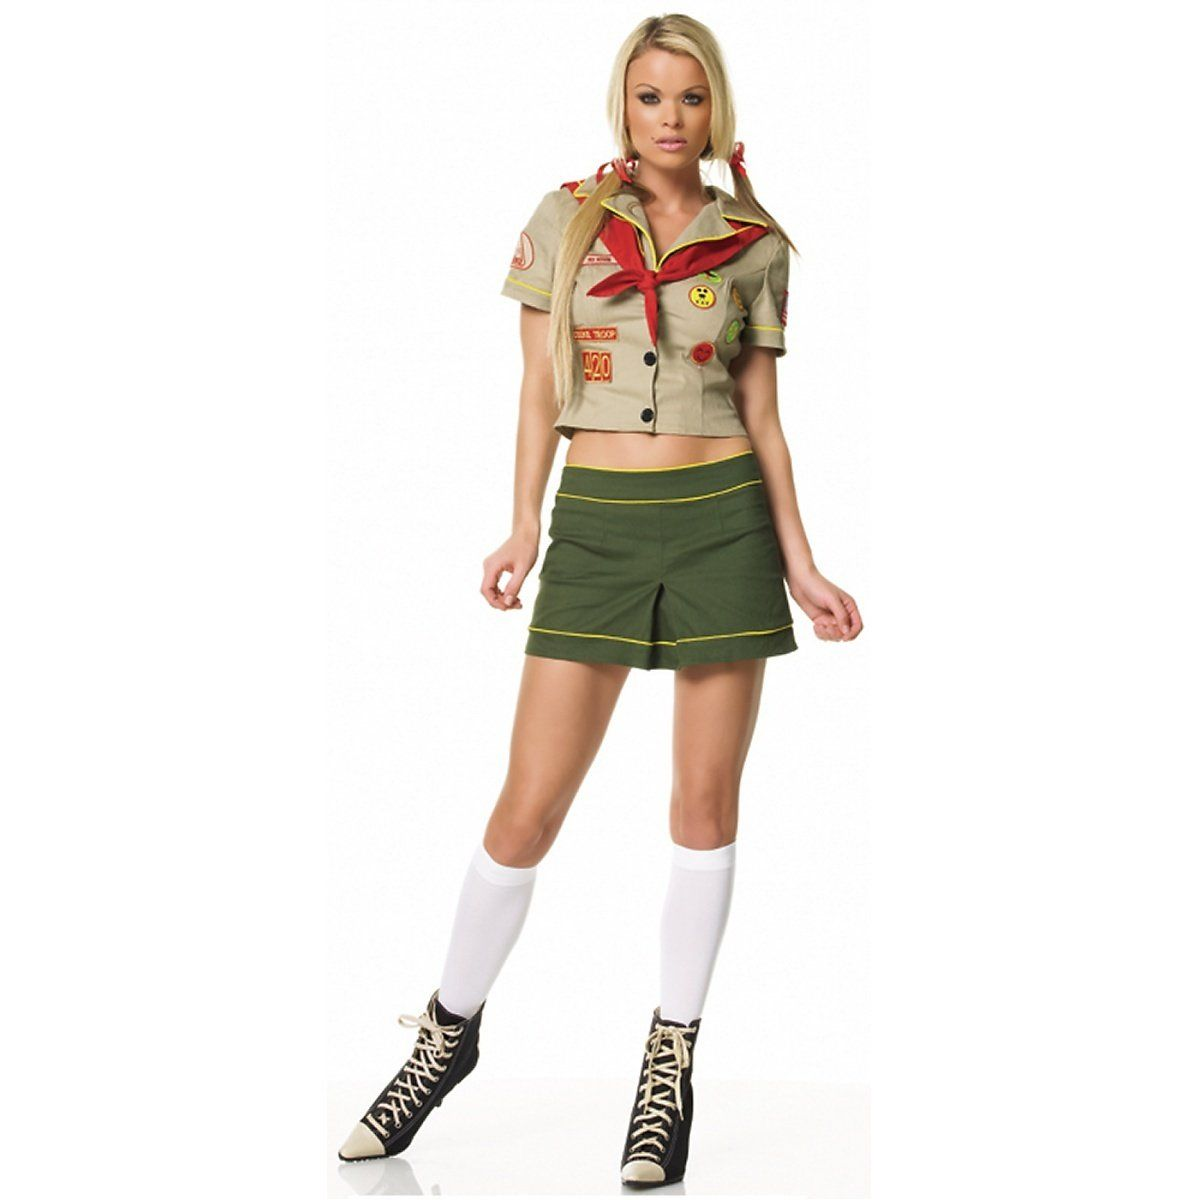 Camper Scout Girl Costume